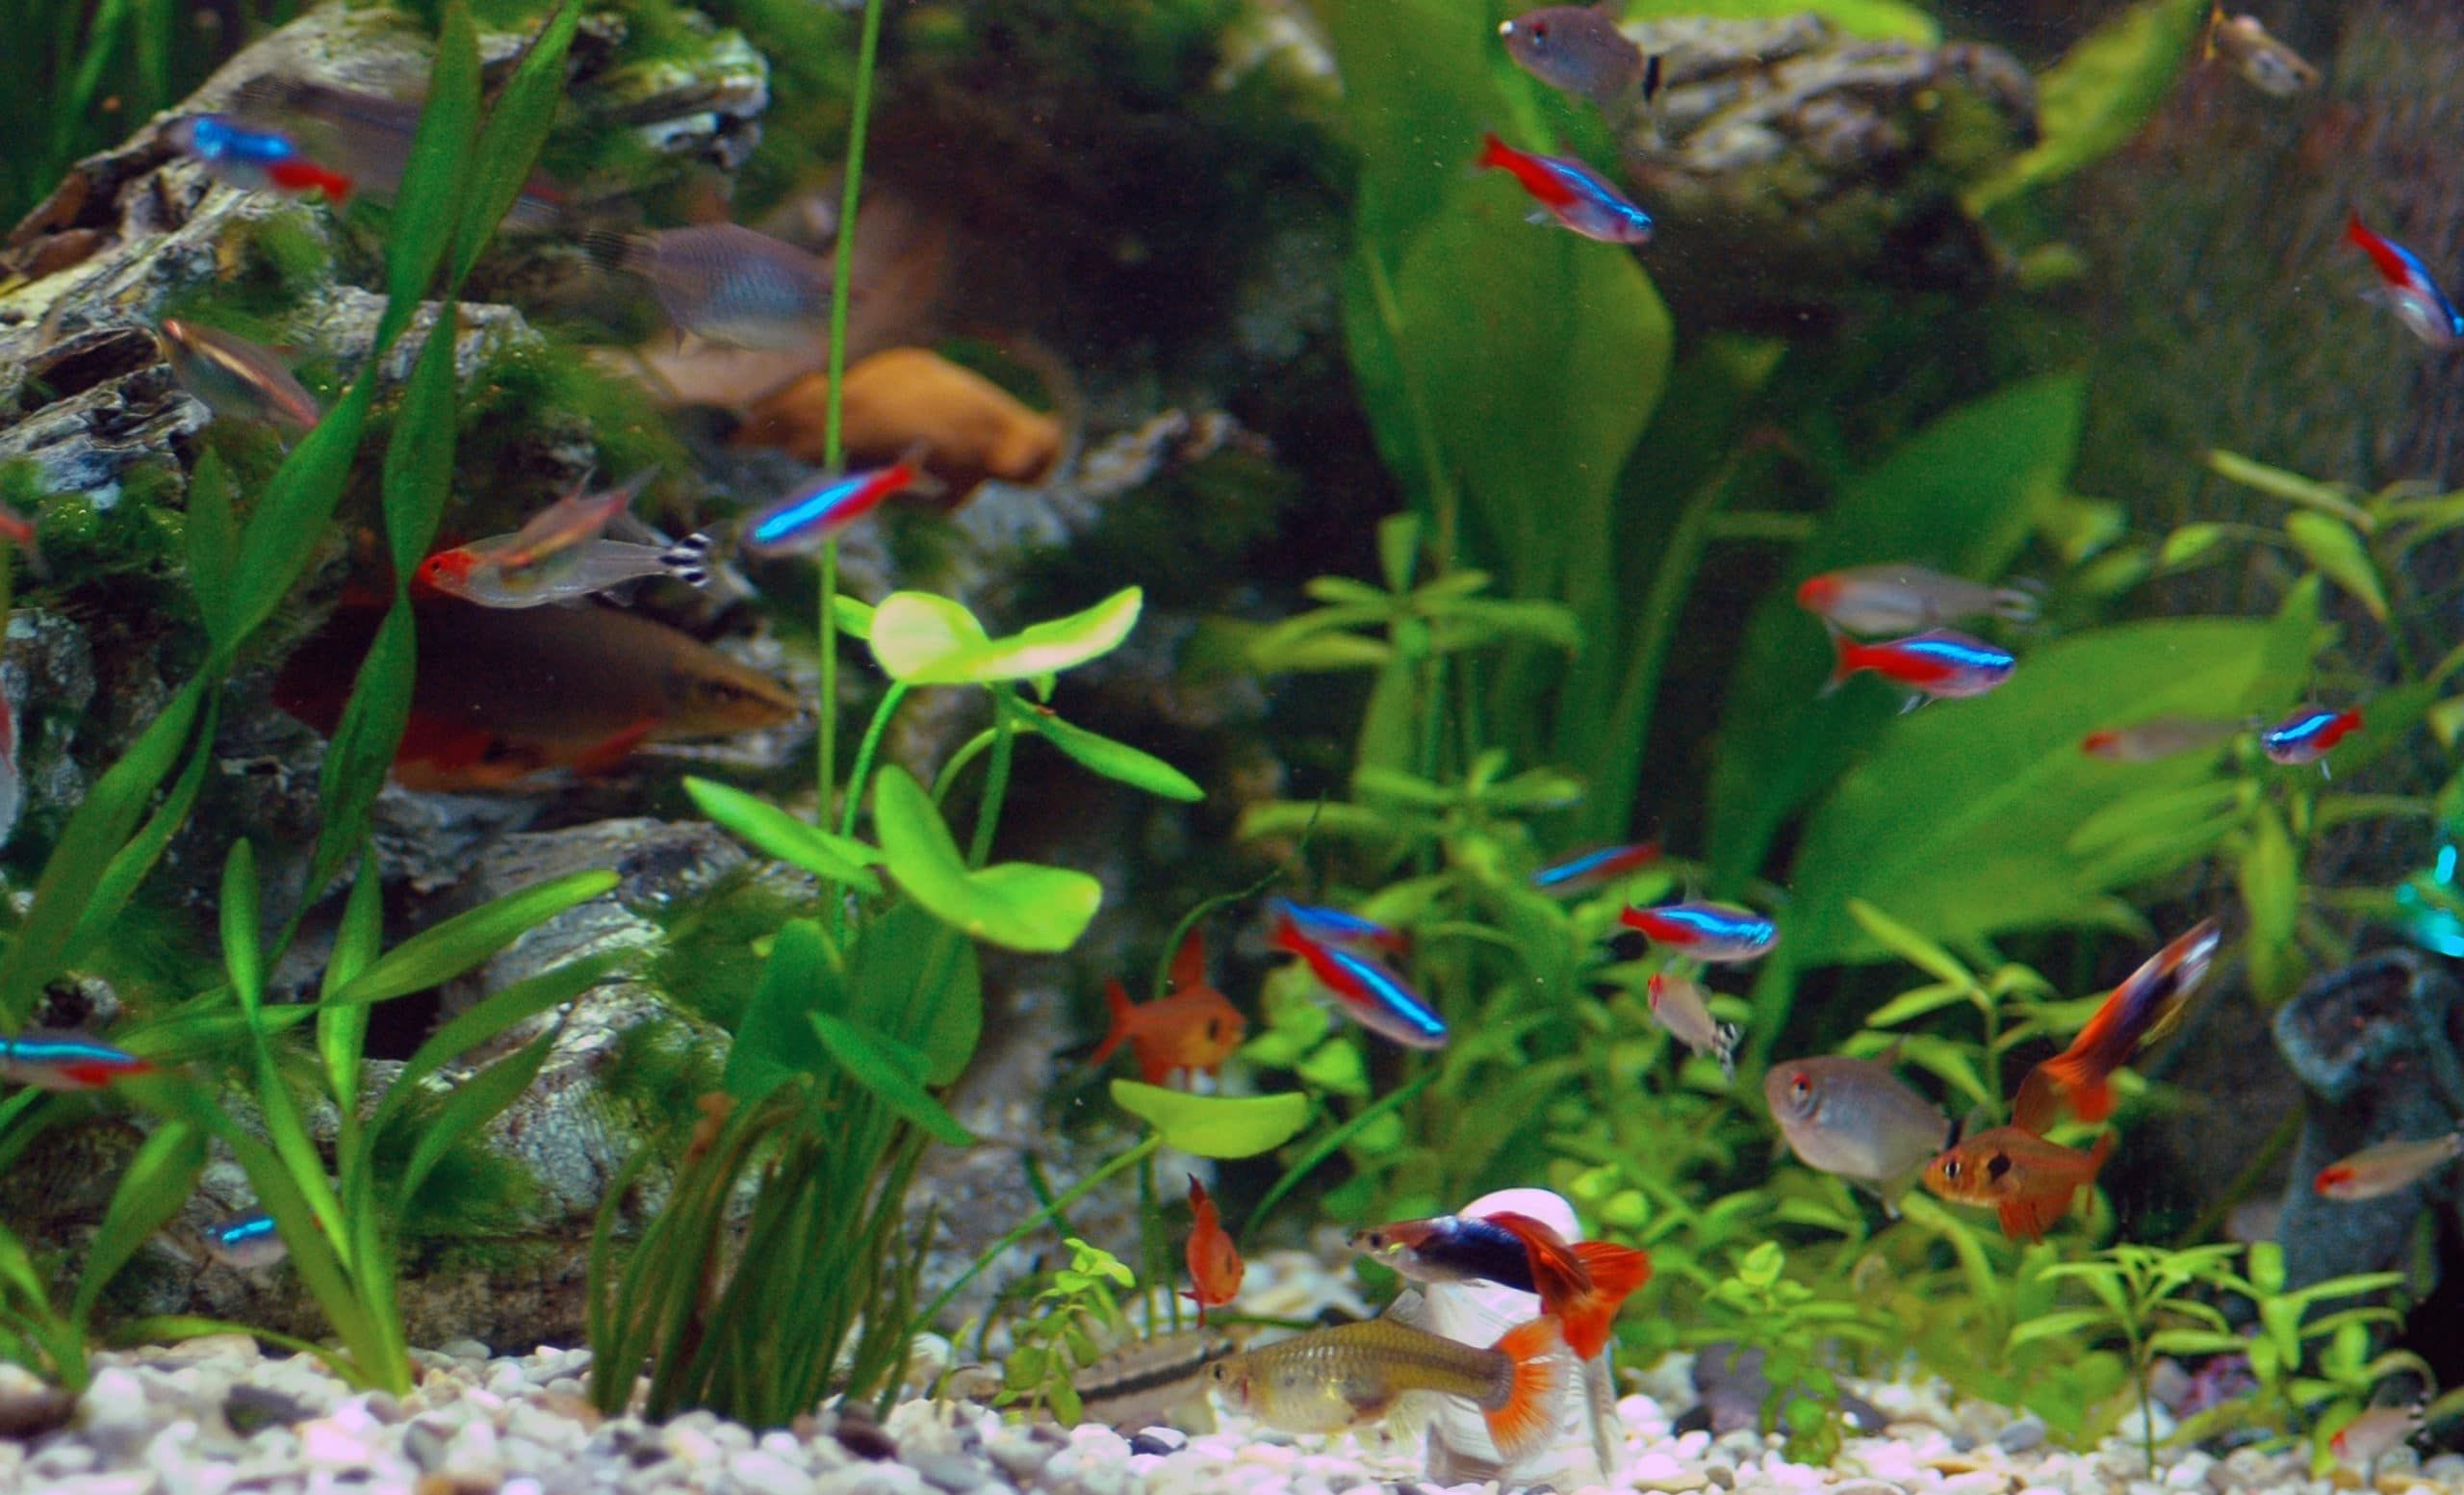 See Guppy Fish And Tetras Are They Good Tank Mates In 2020 Guppy Fish Neon Tetra Neon Tetra Fish